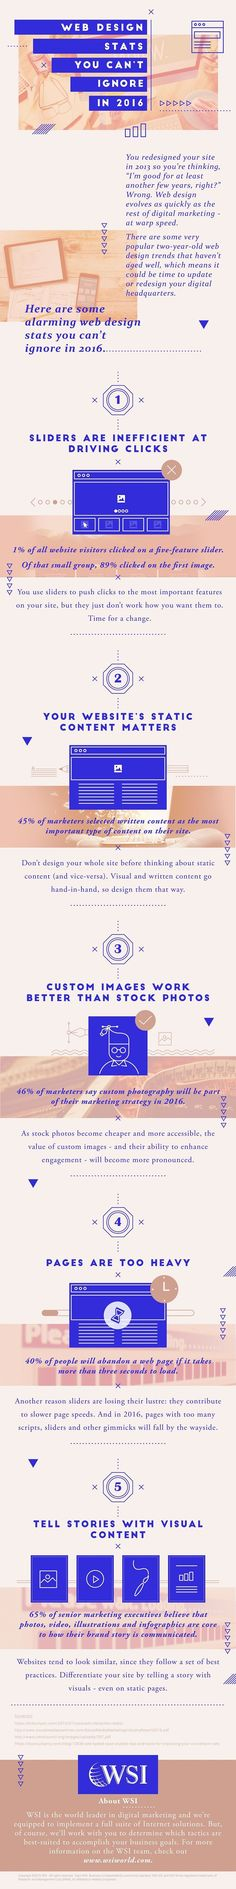 One of the most formidable challenges in the field of digital marketing is to maintain the pace with the speed of advancements - this infographic outlines some of the key web design trends of 2016.